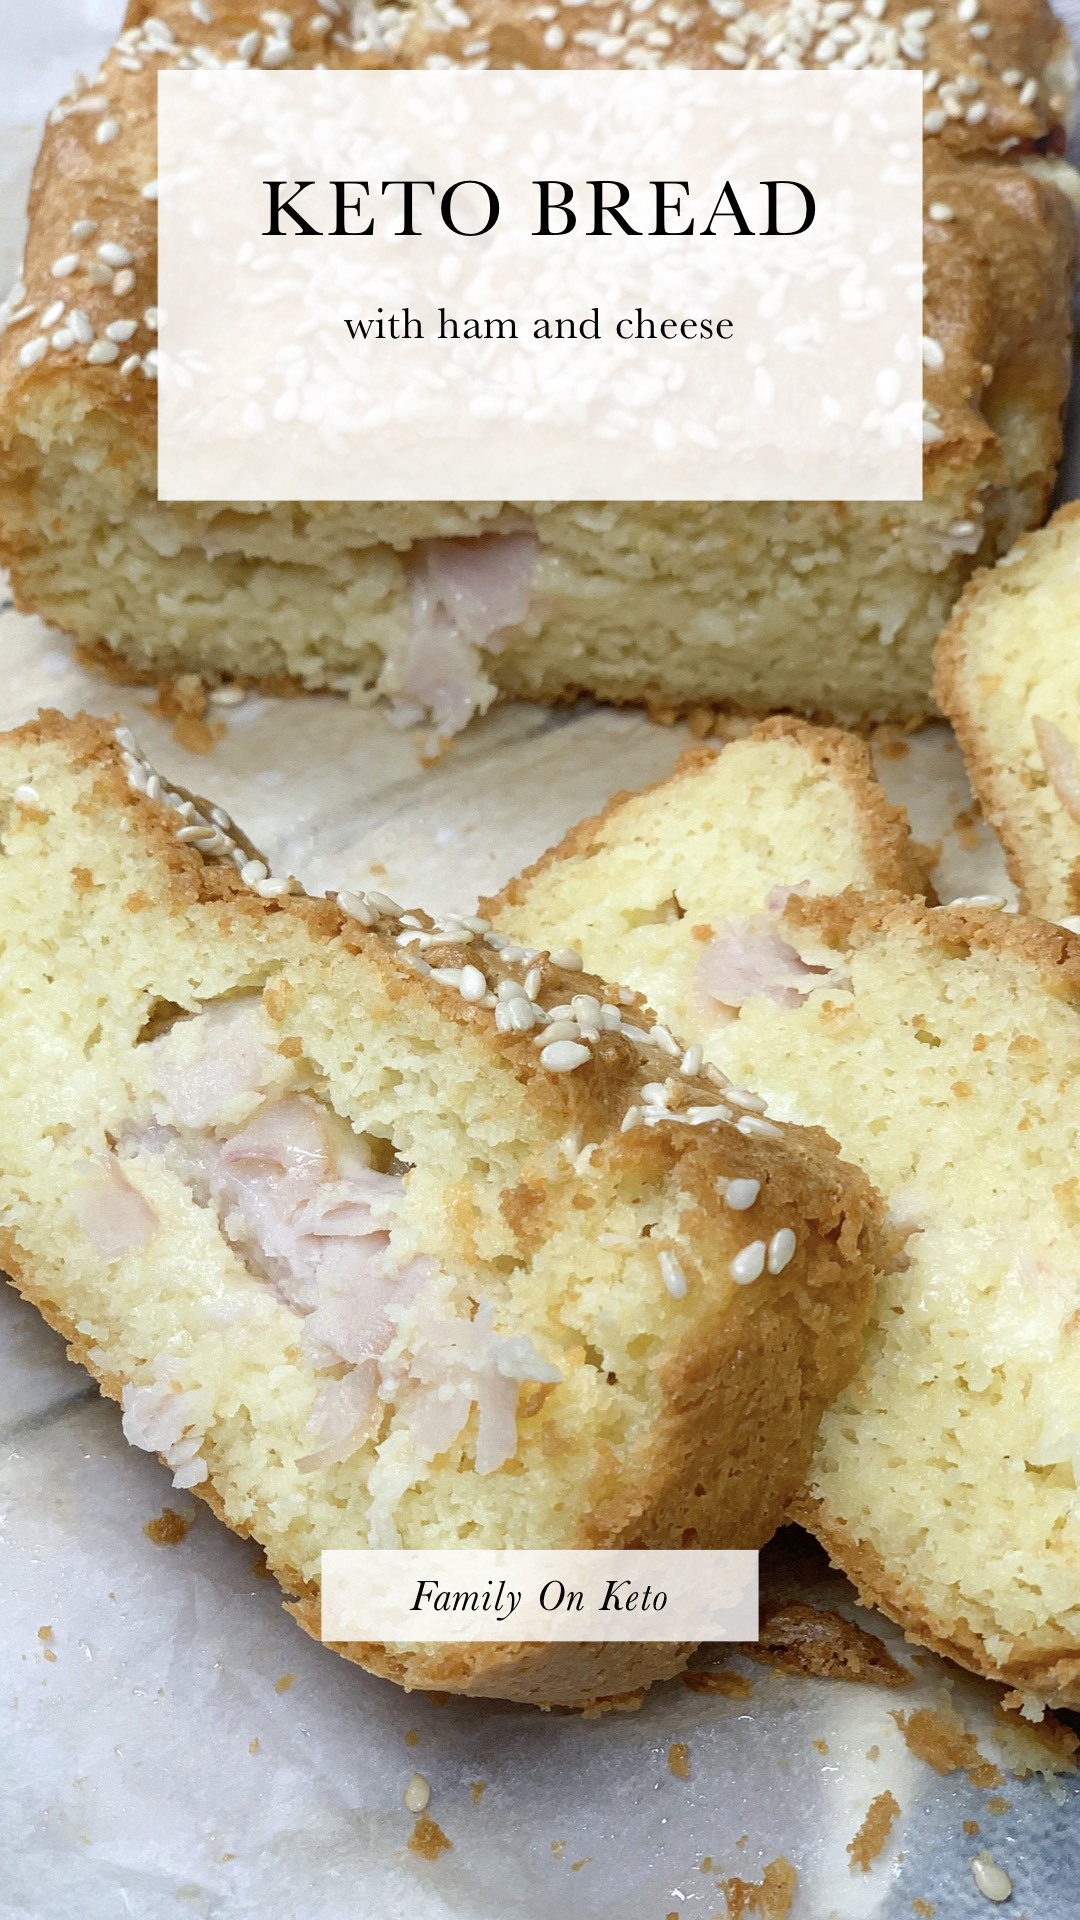 Picture of almond keto bread with ham and cheese